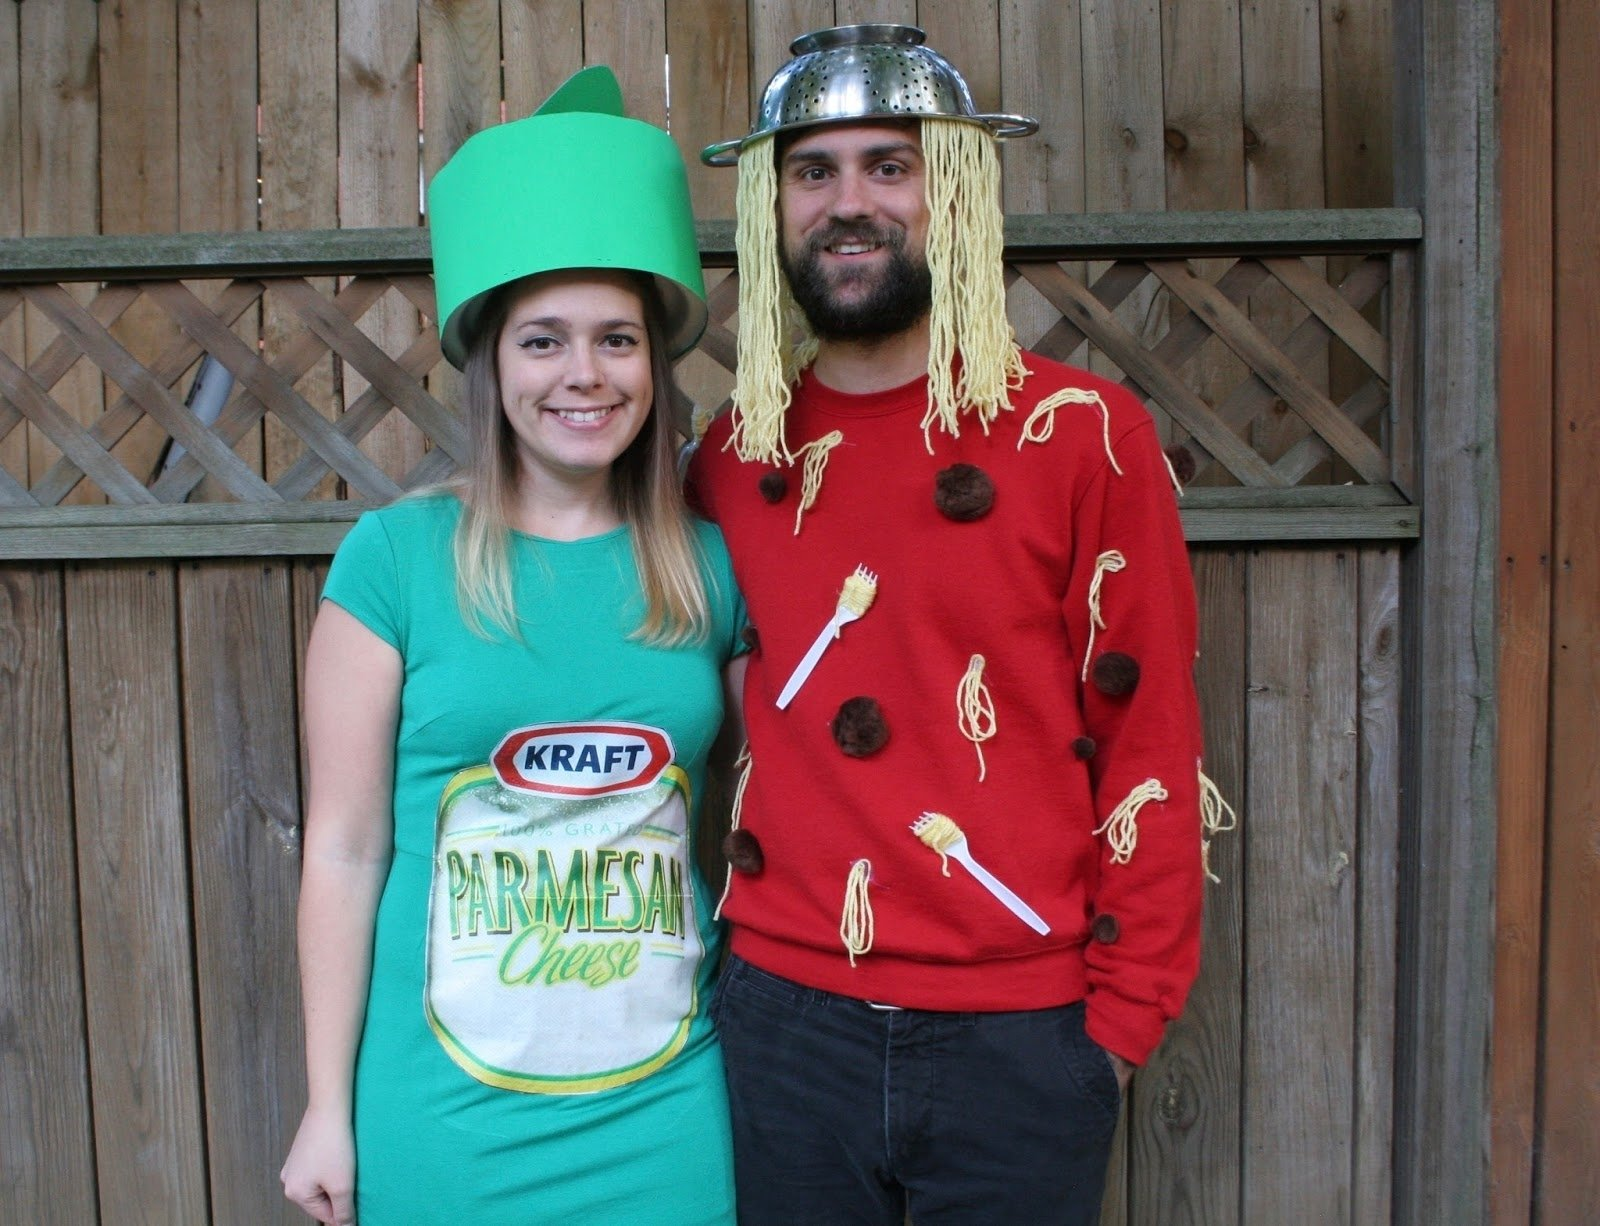 10 Perfect Ideas For Couples Halloween Costumes our halloween costumes spaghetti parmesan cheese the surznick 10 2020